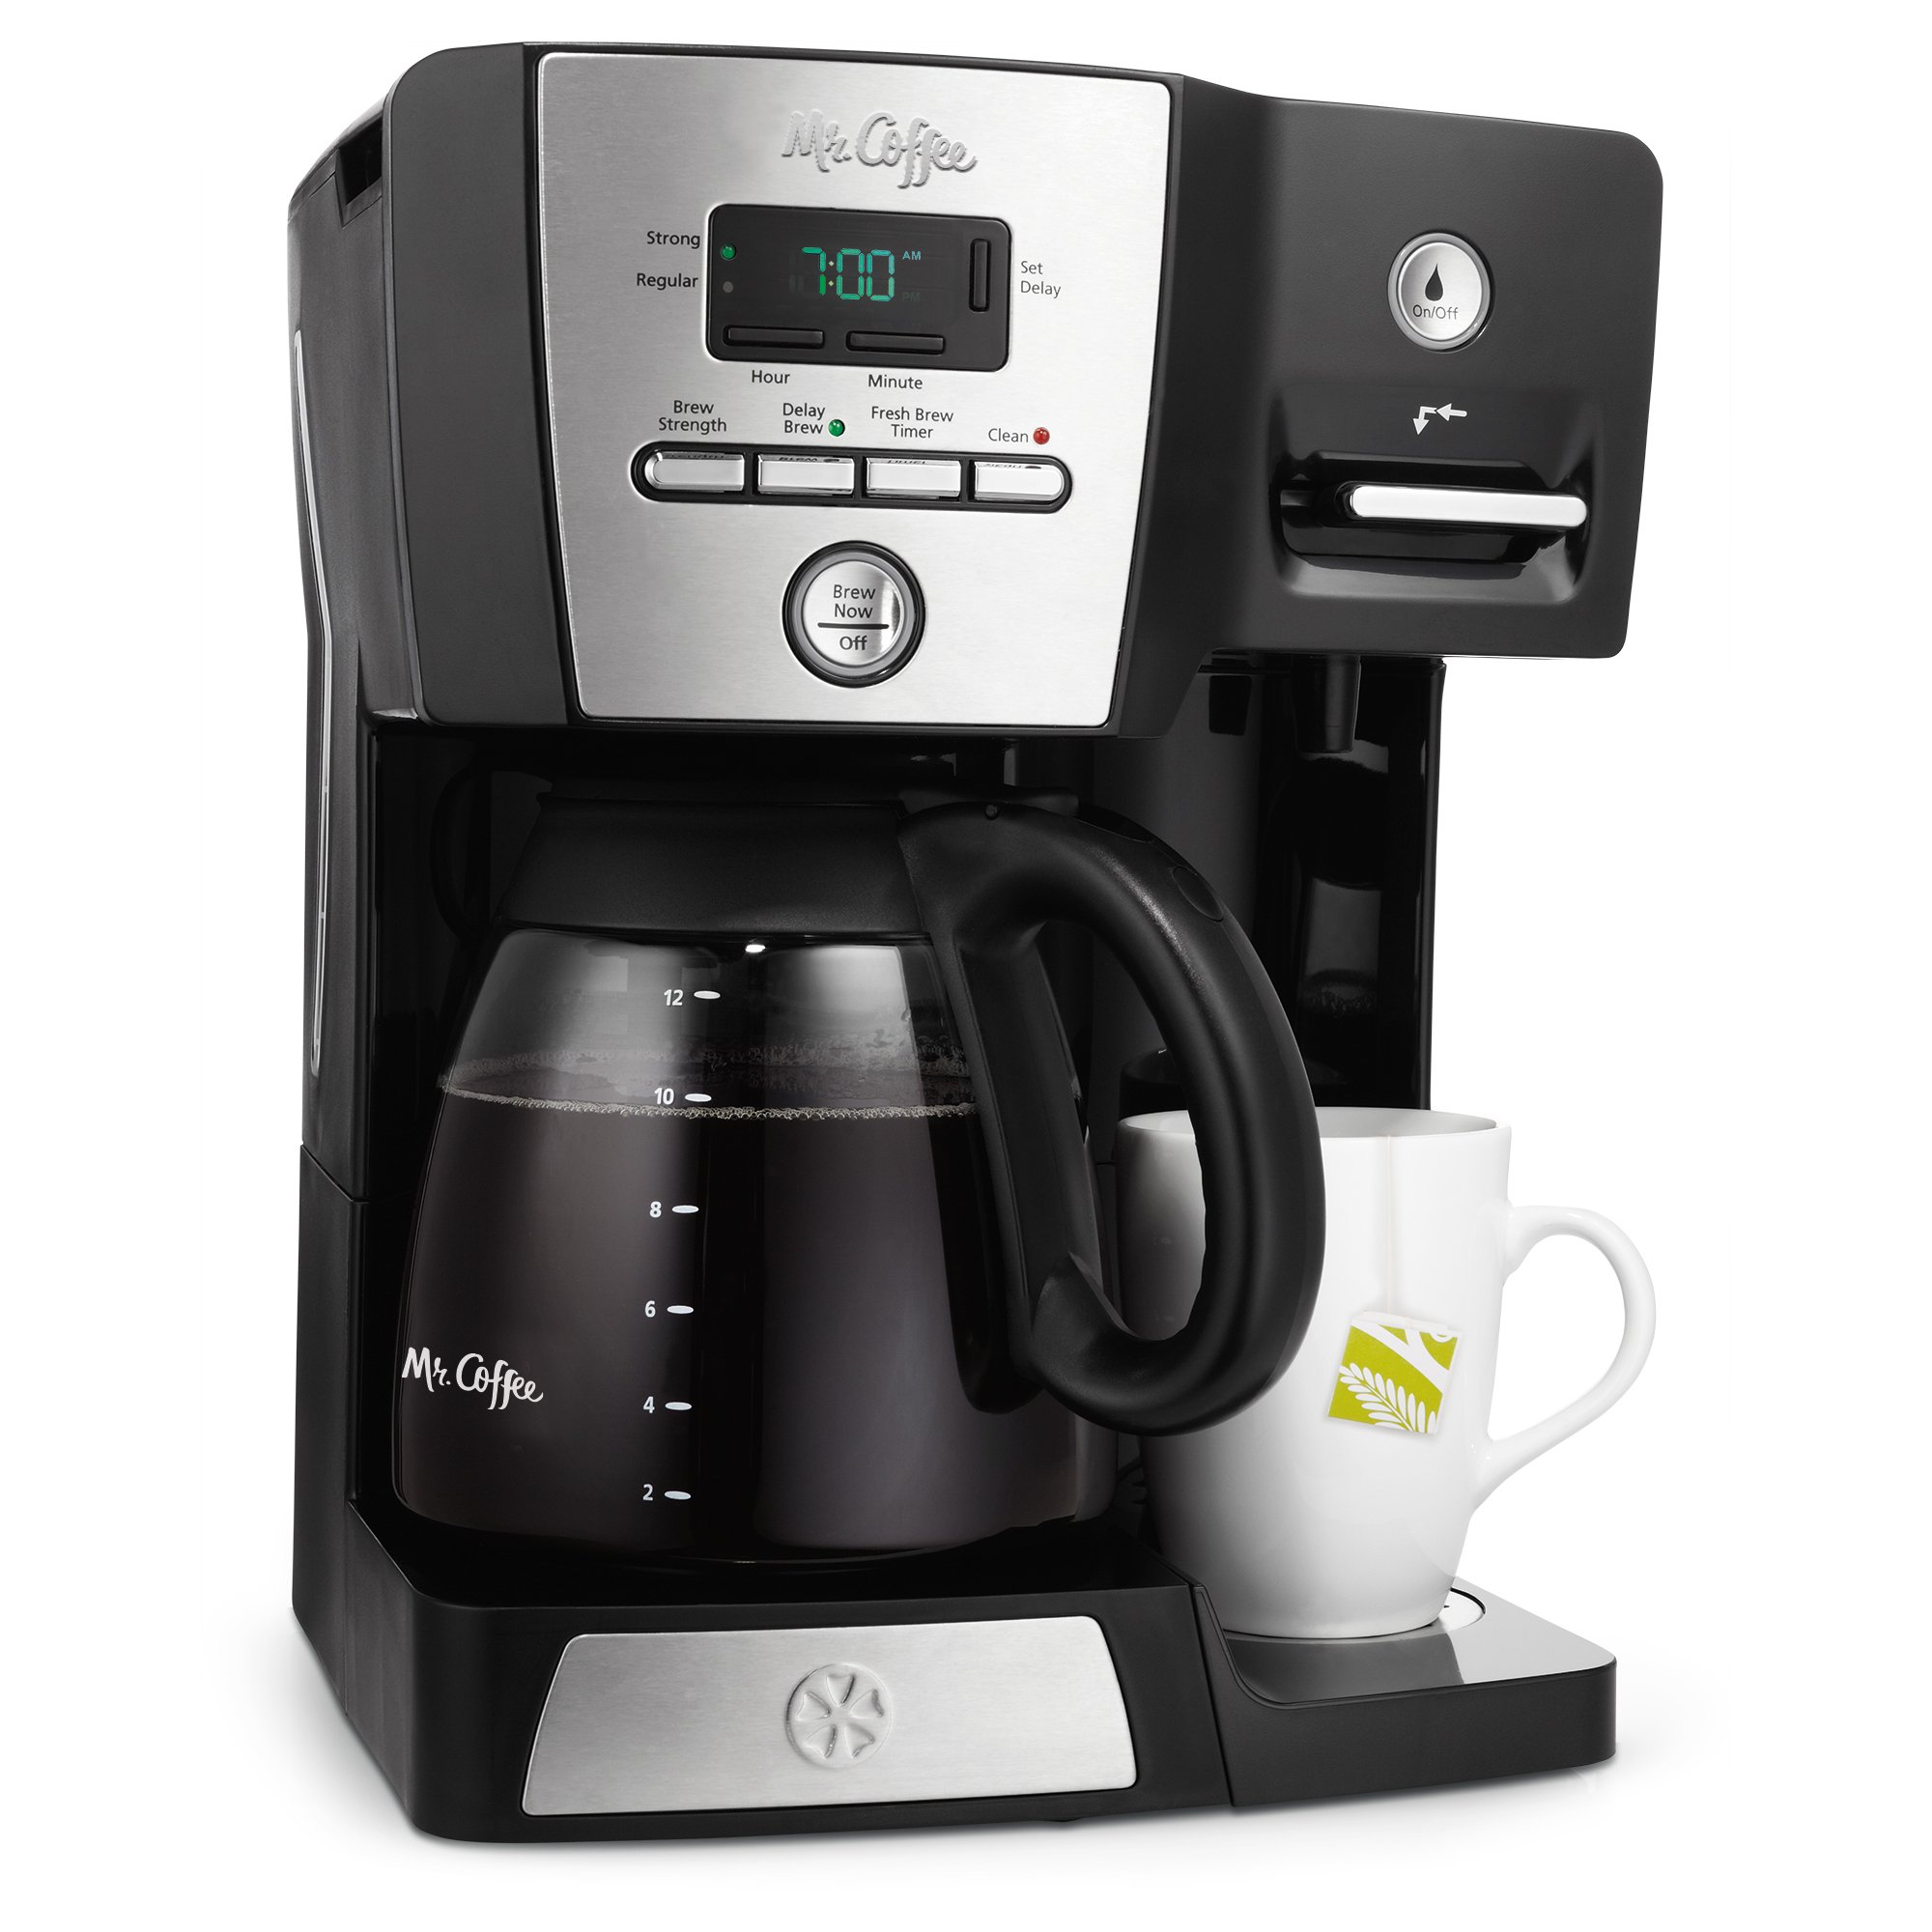 Mr. Coffee Versatile Brew 12-Cup Programmable Coffee Maker with 16 Oz. Hot Water Dispenser, Black/Chrome by Mr. Coffee